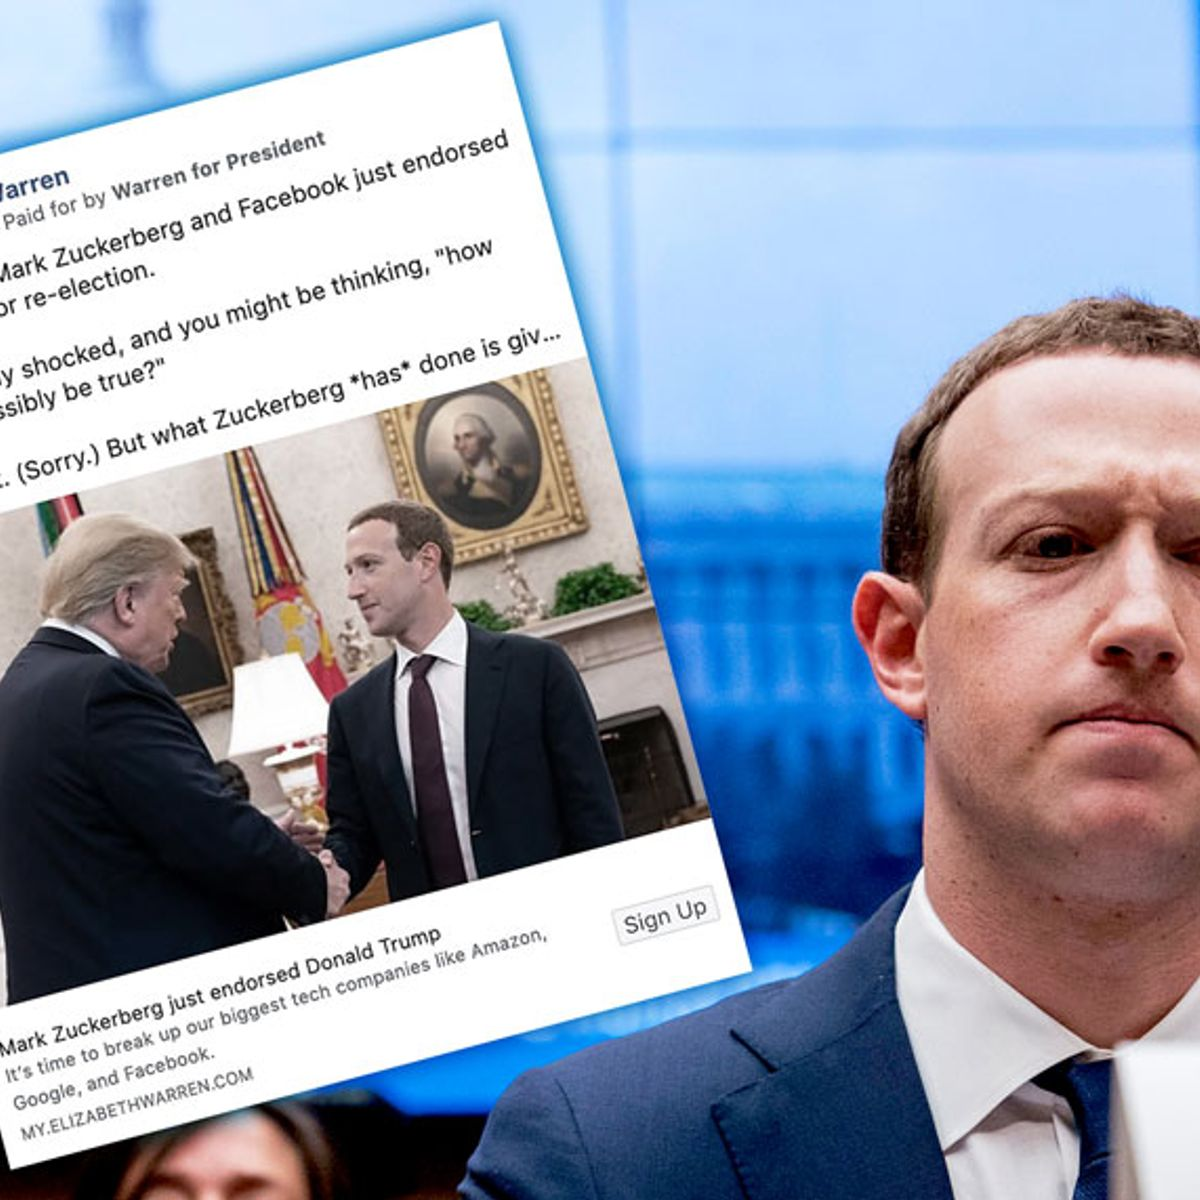 Facebook's rationale for allowing lies in political ads makes no sense